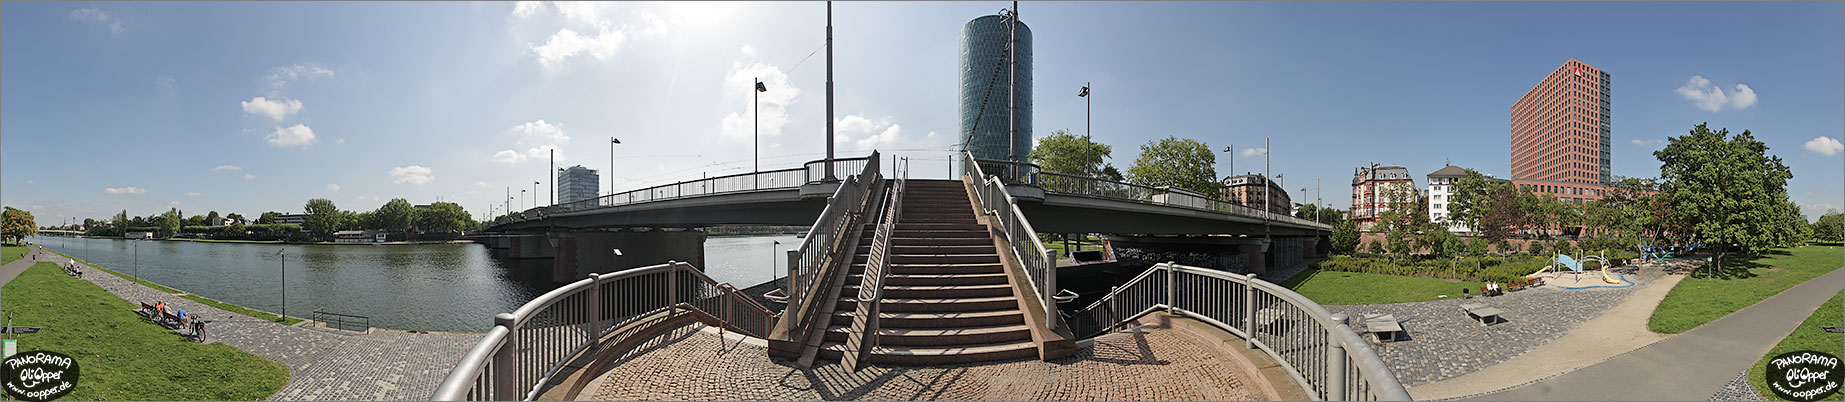 Panorama Frankfurt am Main - Friedensbr�cke - p1118 - (c) by Oliver Opper